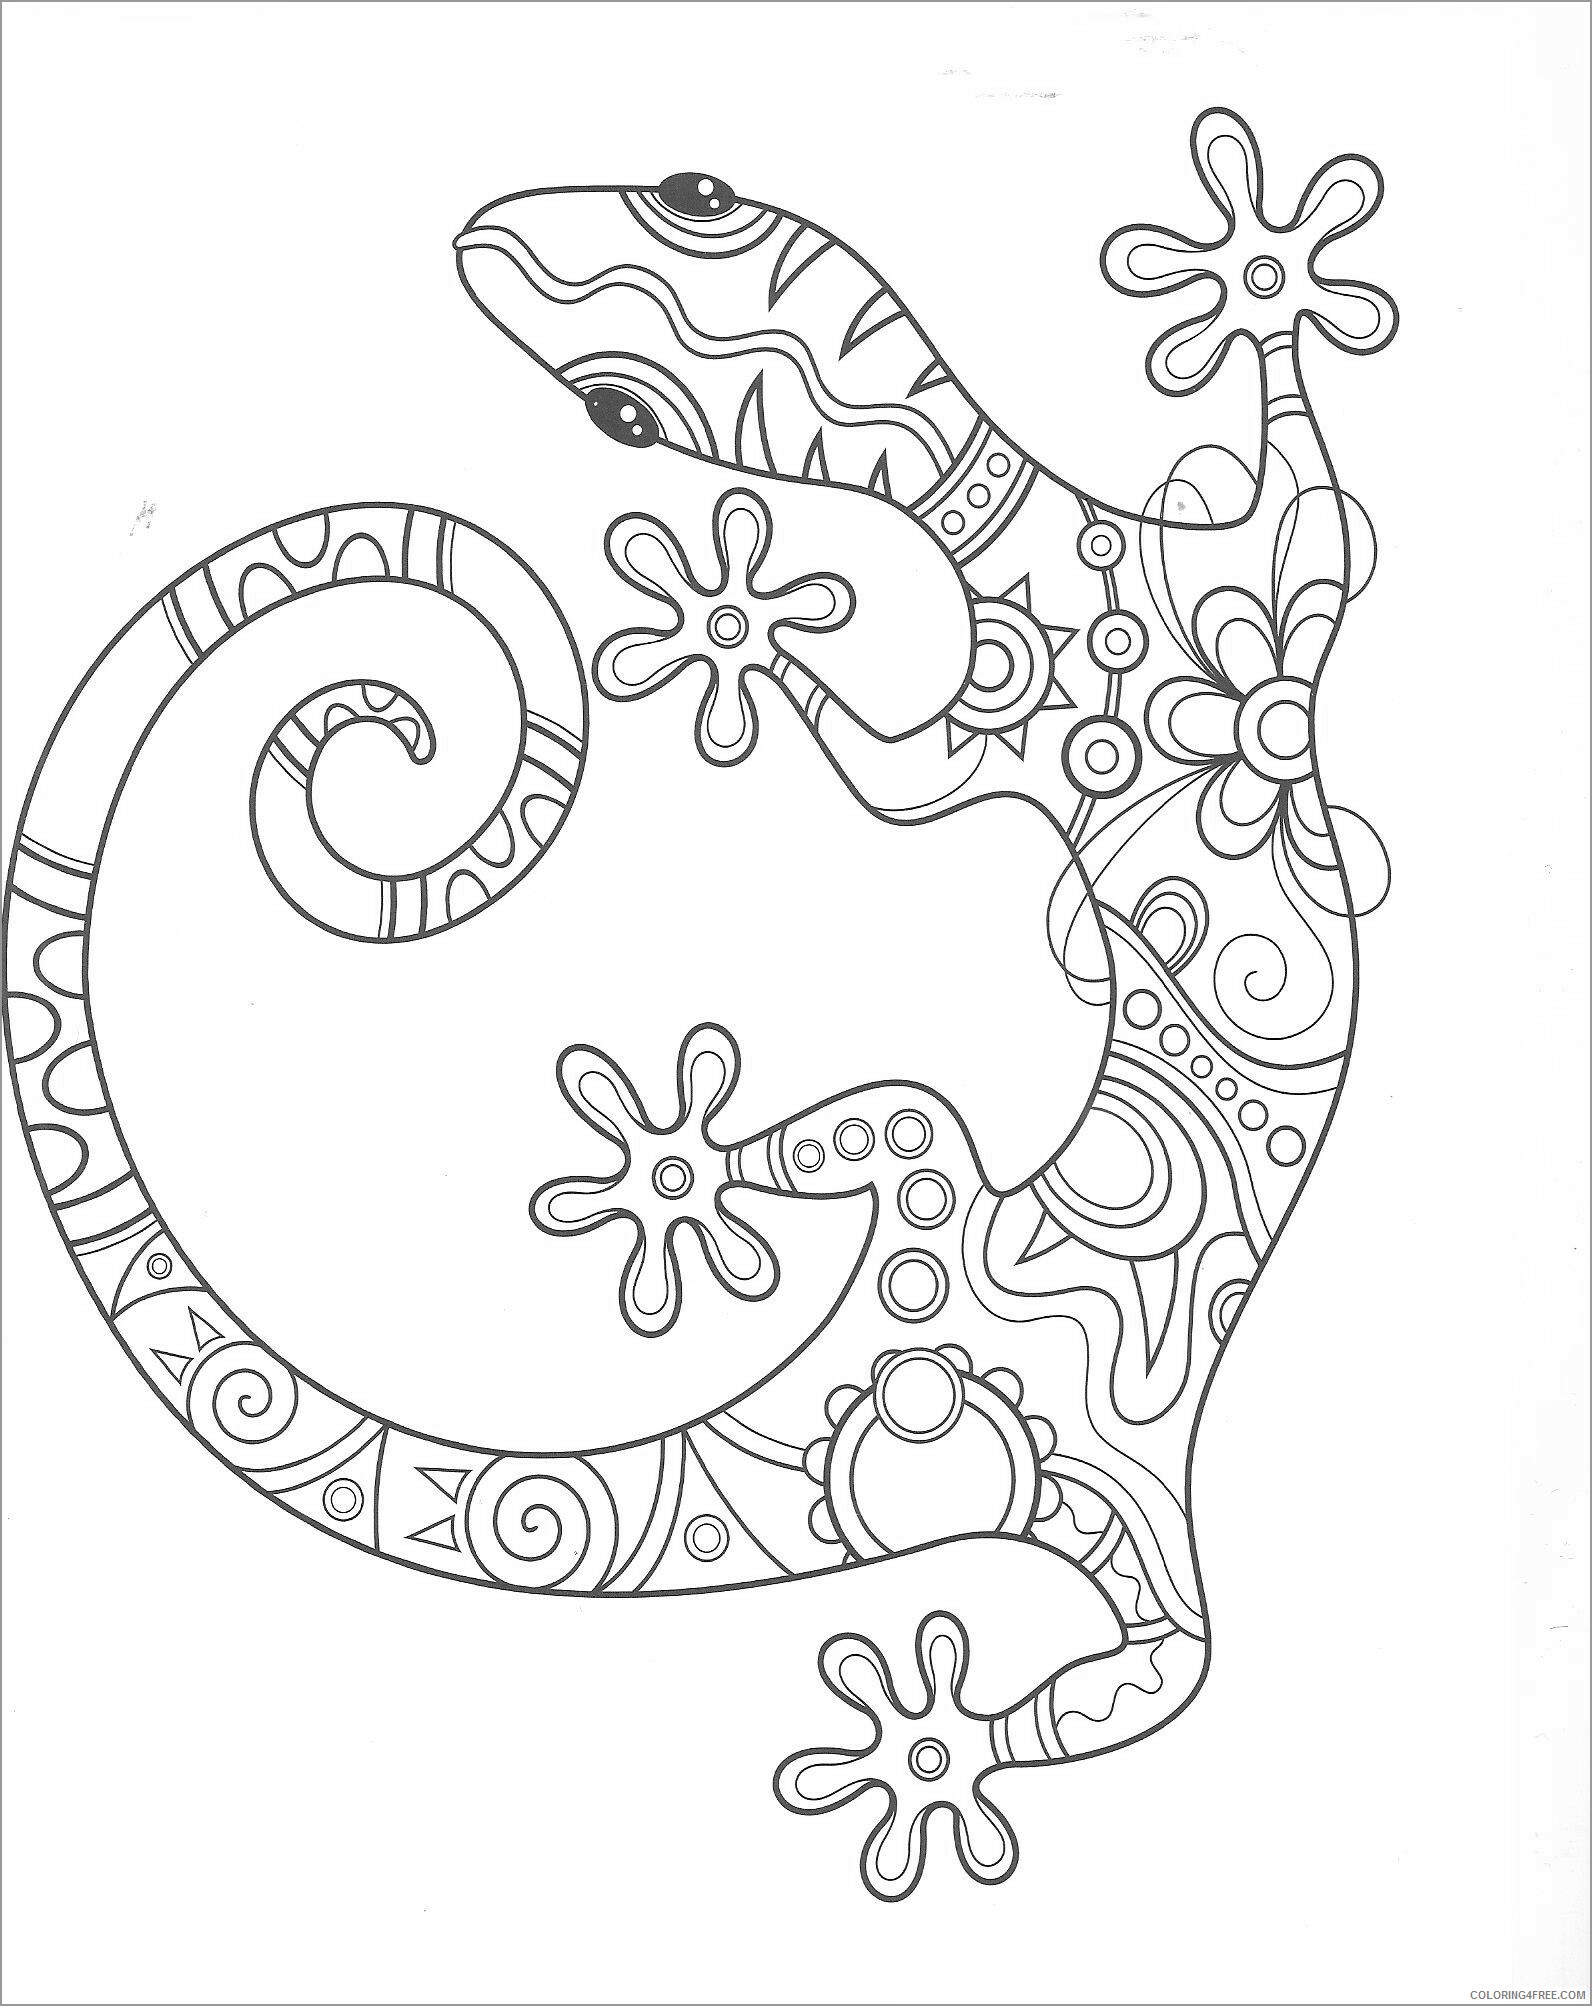 Adult Coloring Pages lizards for adult Printable 2020 044 Coloring4free